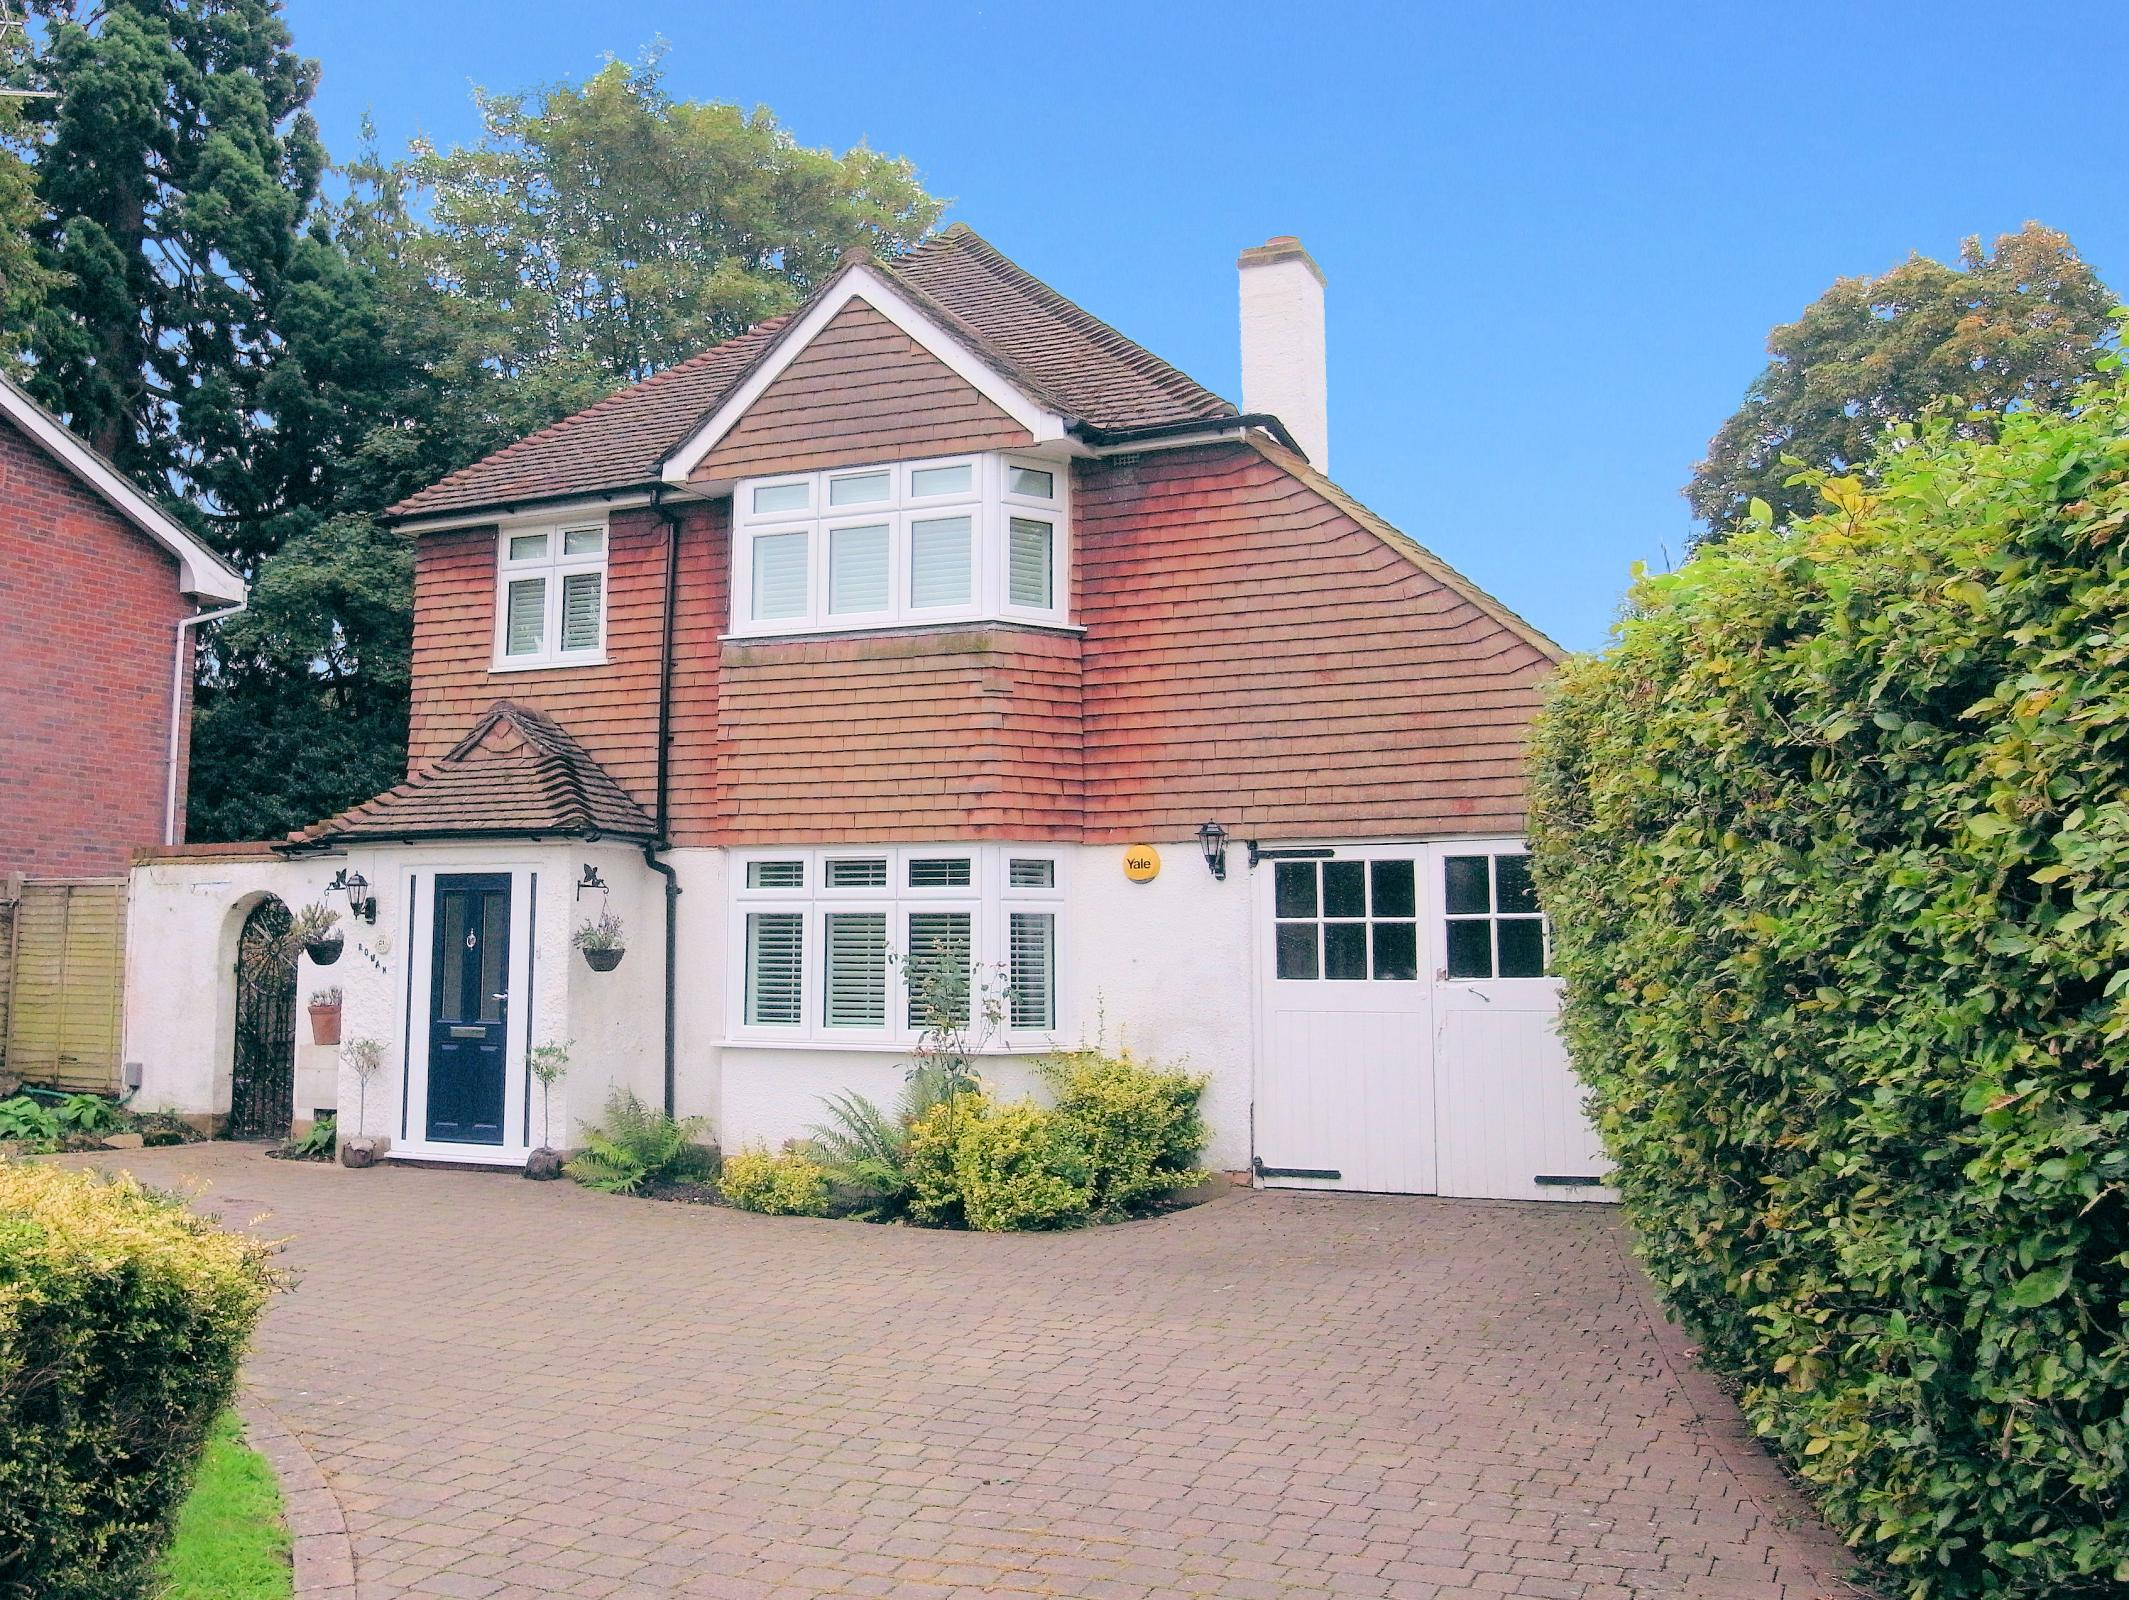 3 Bedrooms Detached House for sale in Broad Street, Guildford, Surrey, GU3